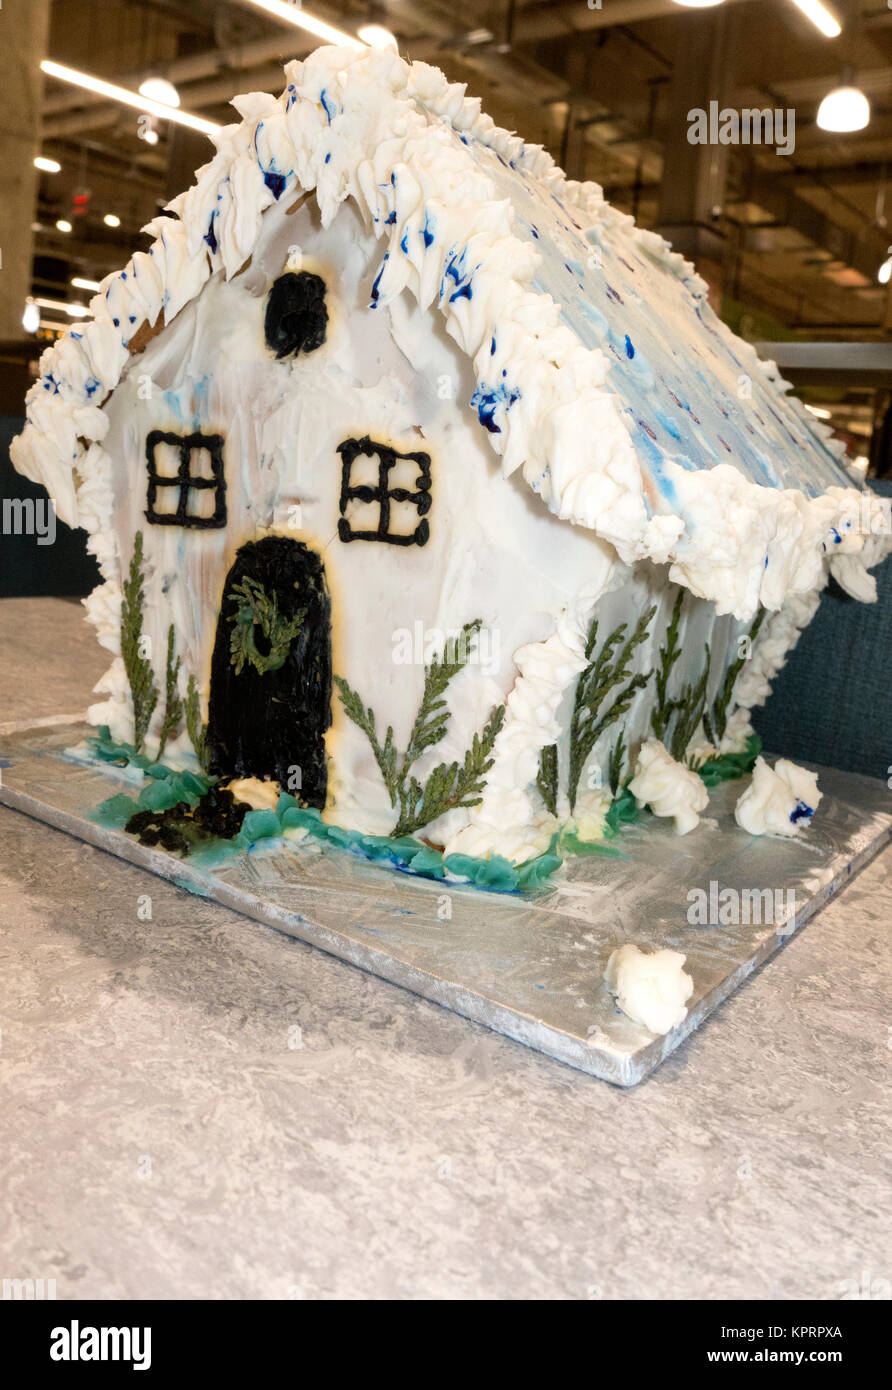 Gingerbread house decorated with lots of frosting and accent greenery for the holiday season. St Paul Minnesota Stock Photo